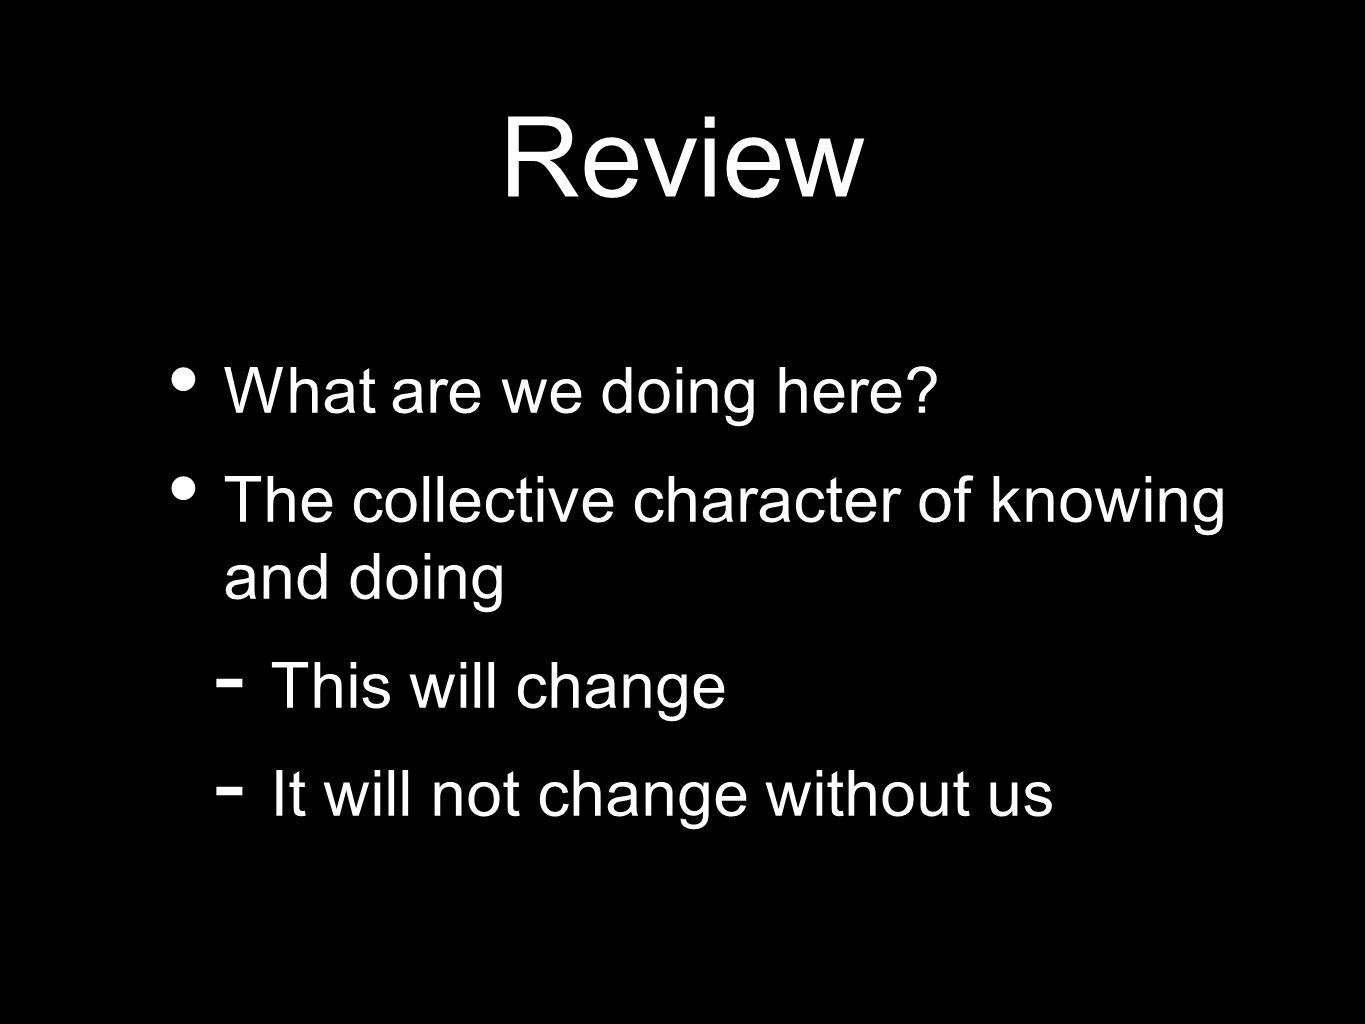 Review What are we doing here? The collective character of knowing and doing - This will change - It will not change without us